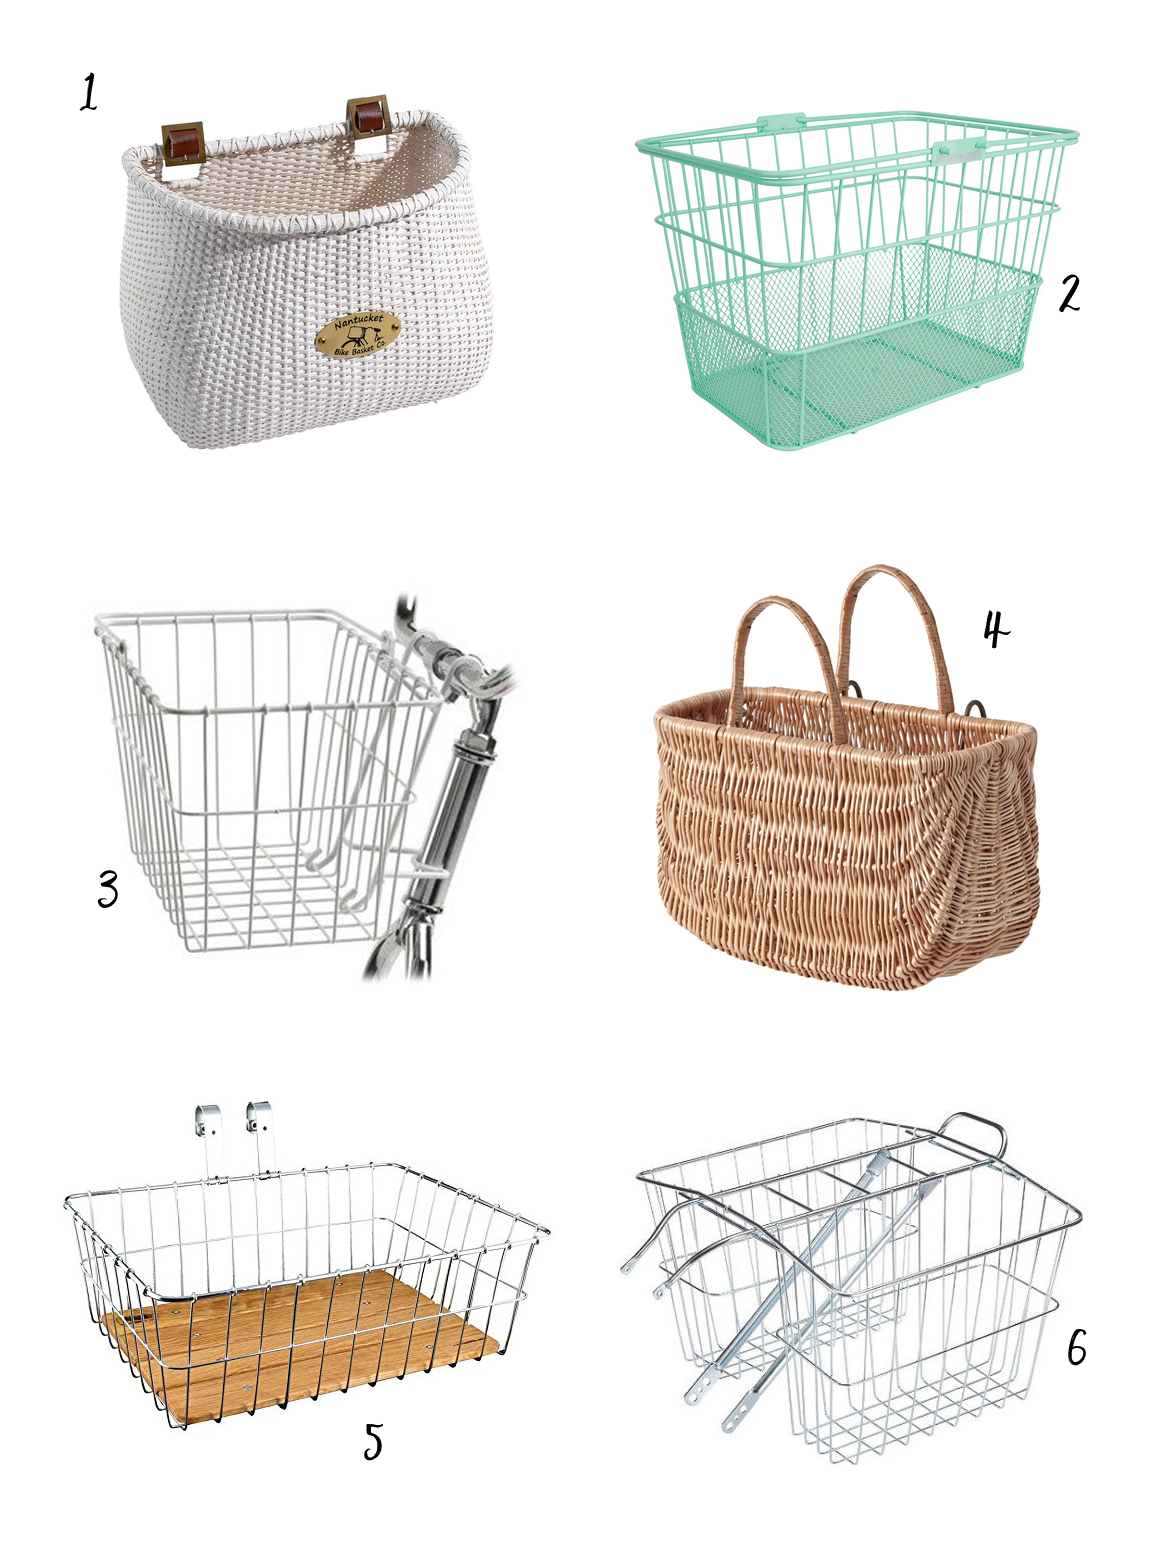 bike baskets wishlist